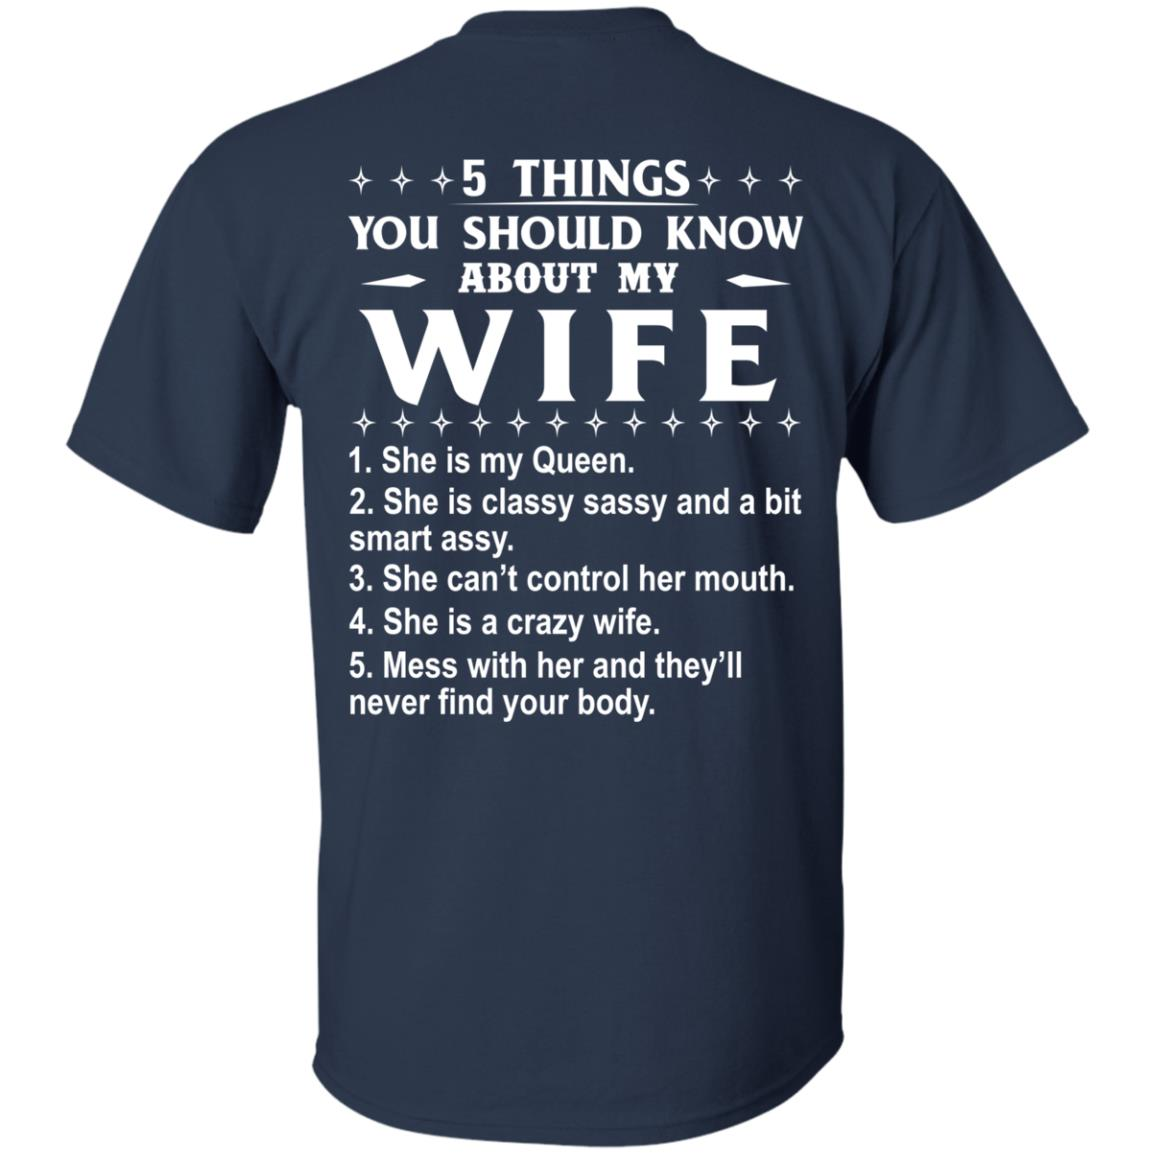 5 Things You Should Know About My wife Shirt & Sweatshirt - image 405